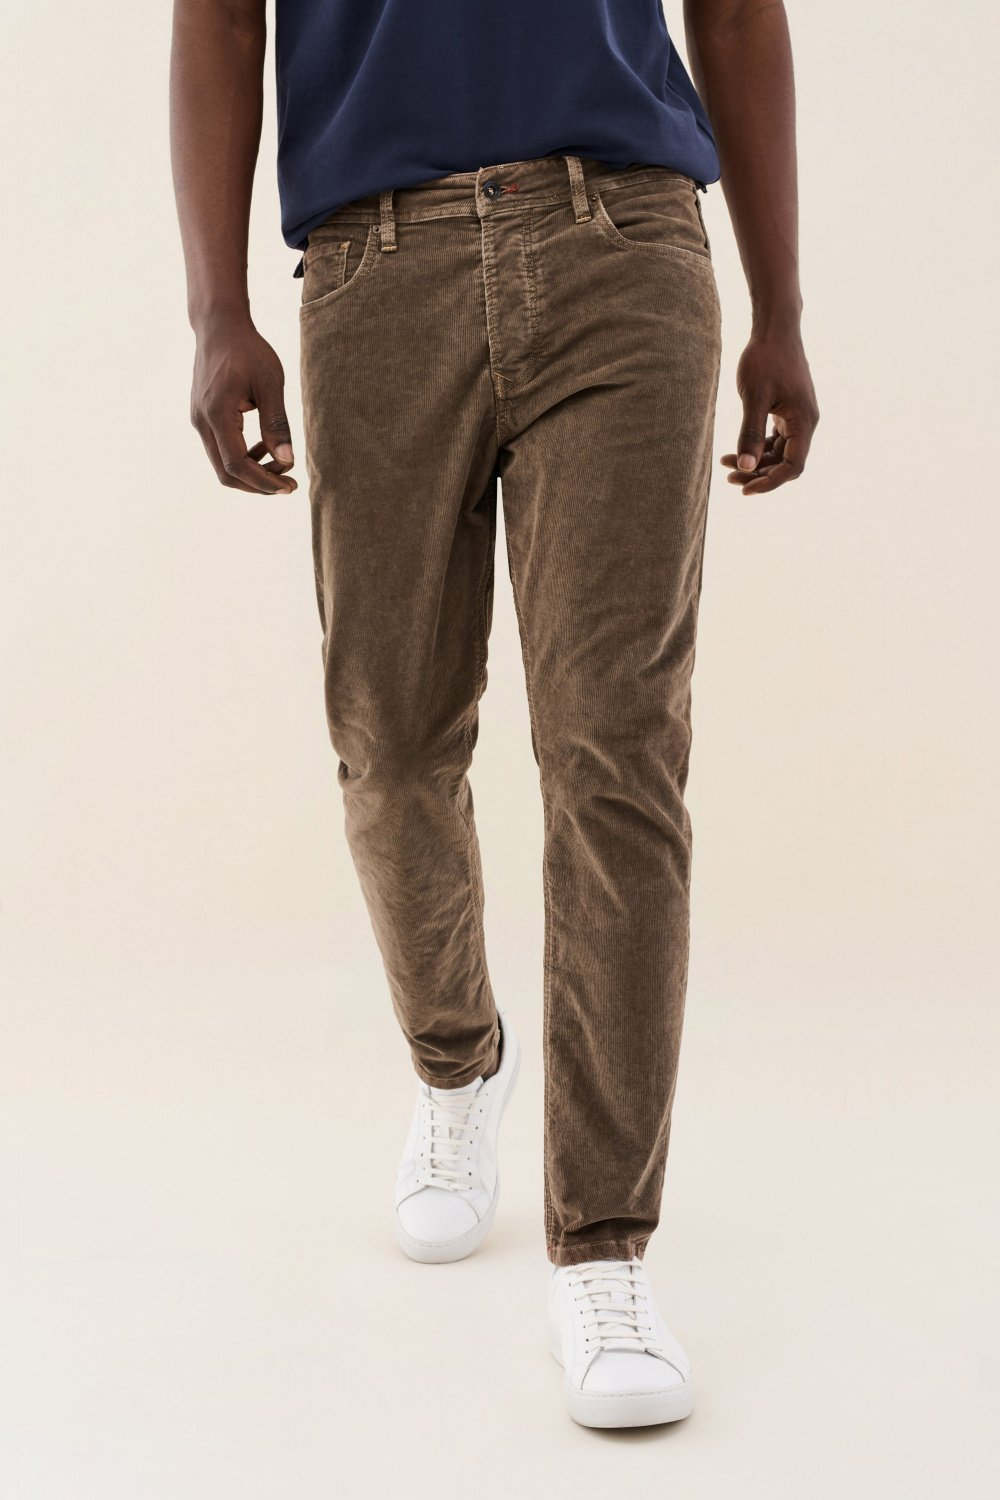 Hose Karl Loose, Slim Fit, Kordstoff - Salsa